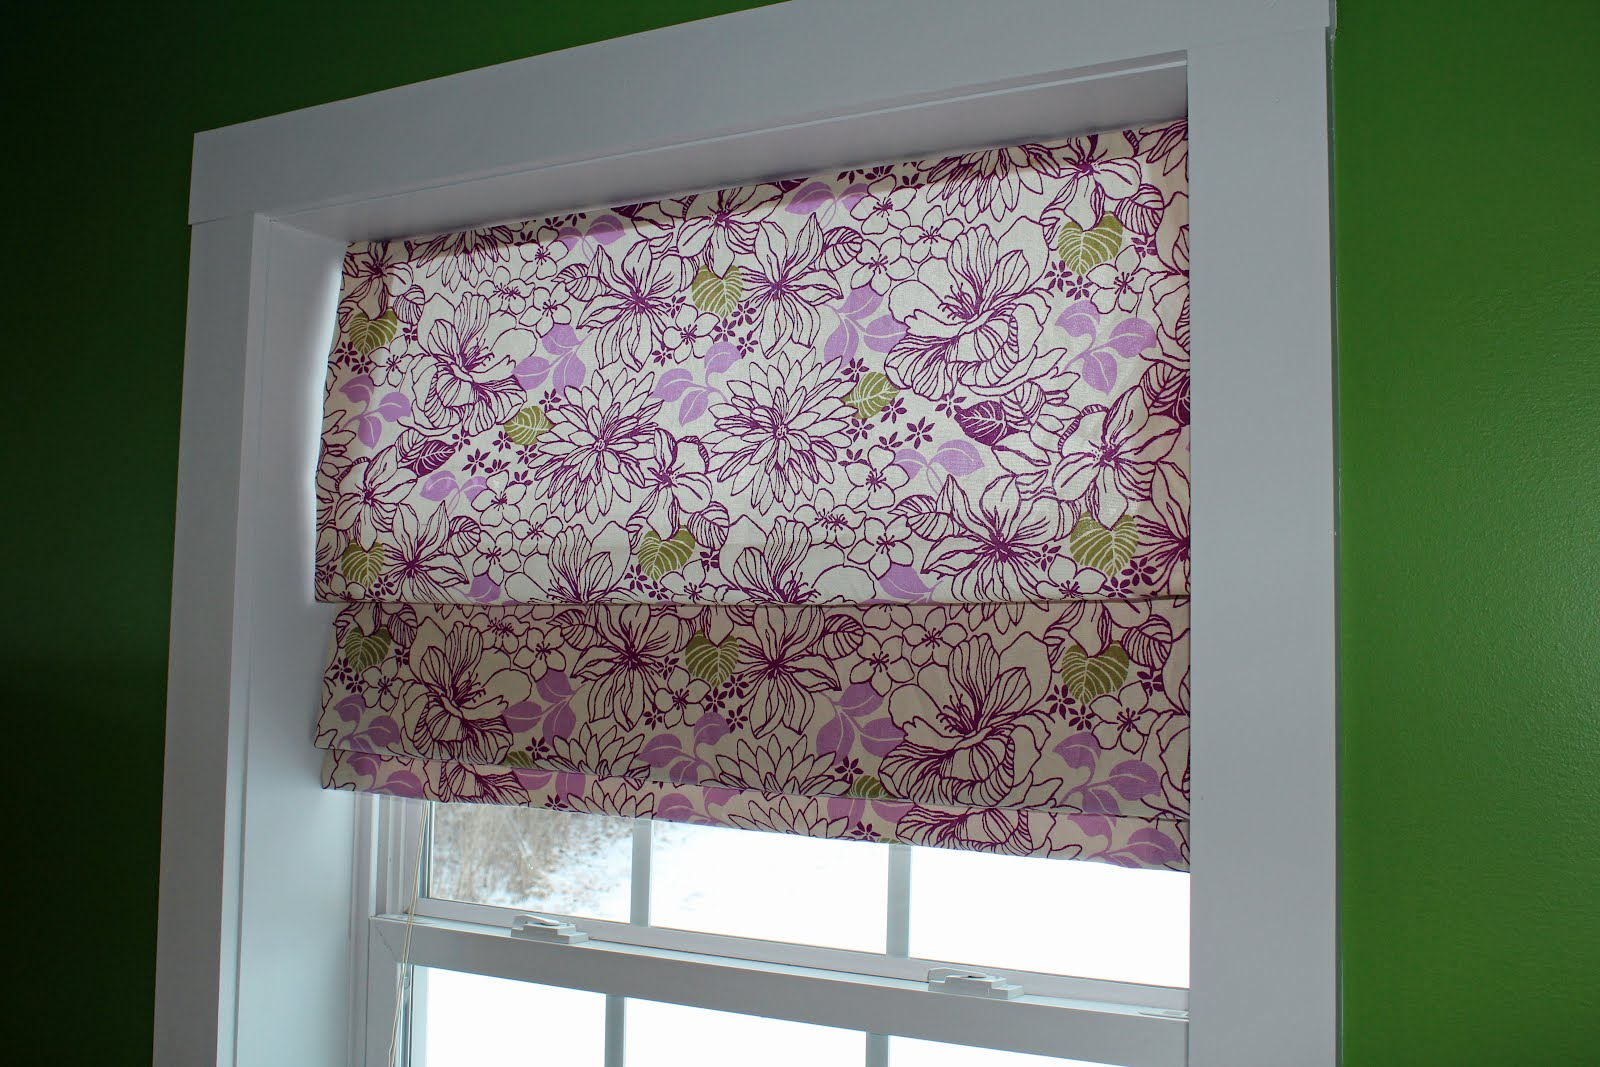 Diy Roman Shades For French Doors Make Your Own Roman Shades From Mini Blinds